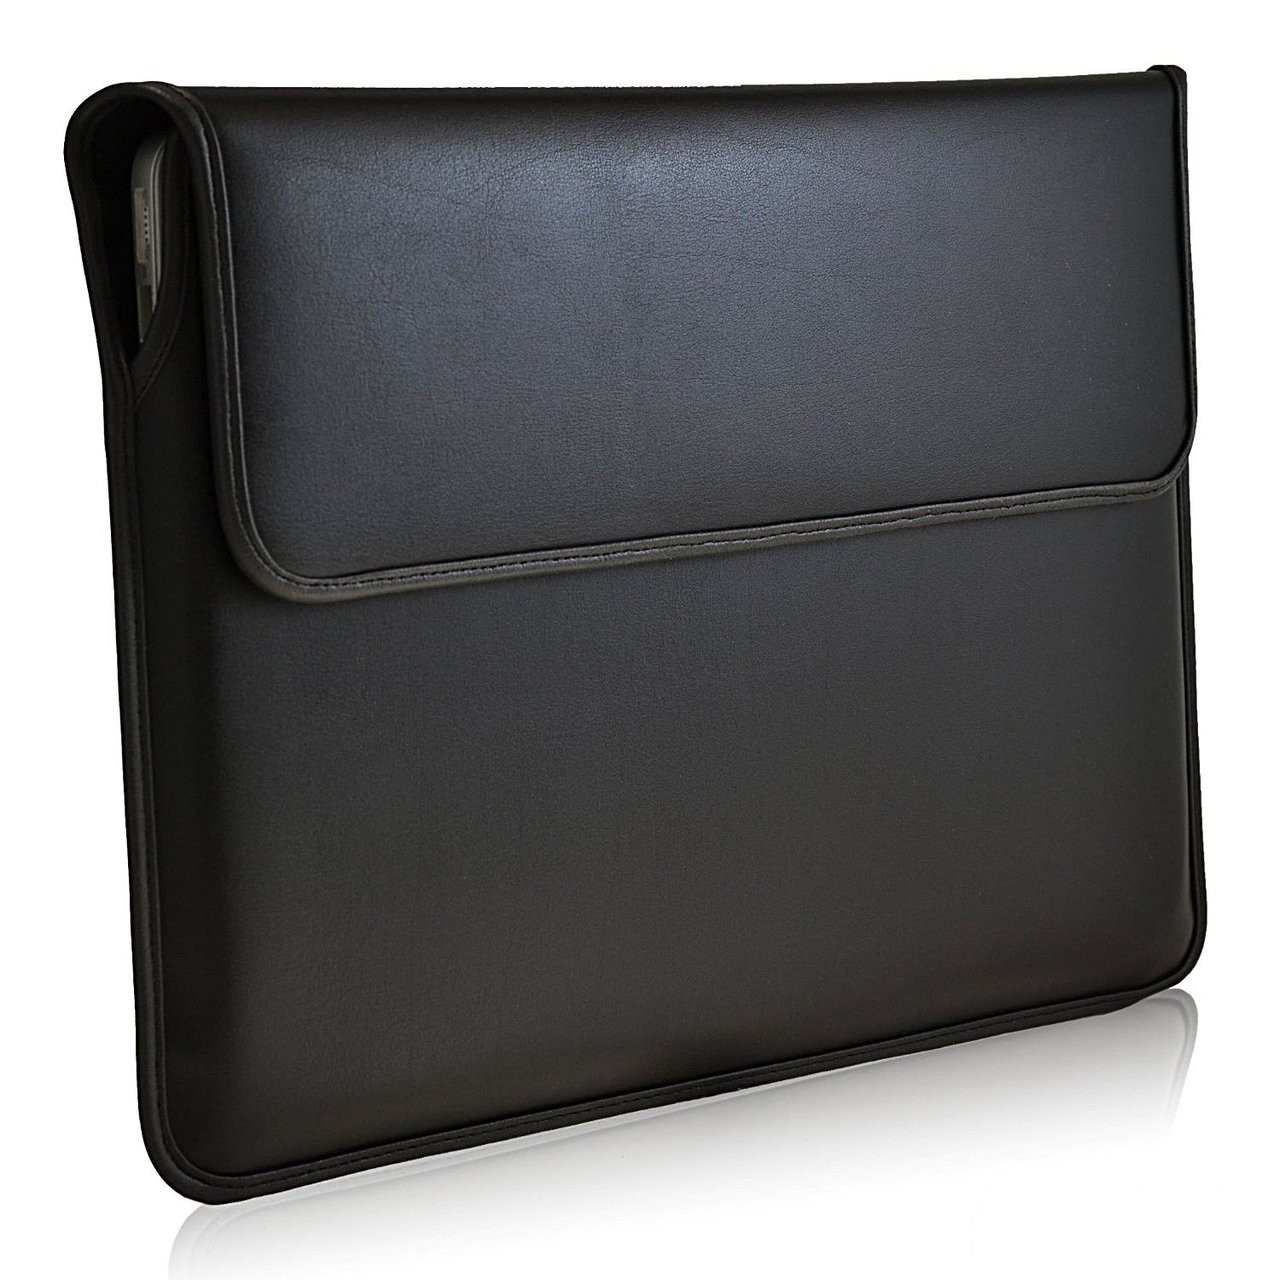 Black Leather 13.3in Laptop Sleeve Case